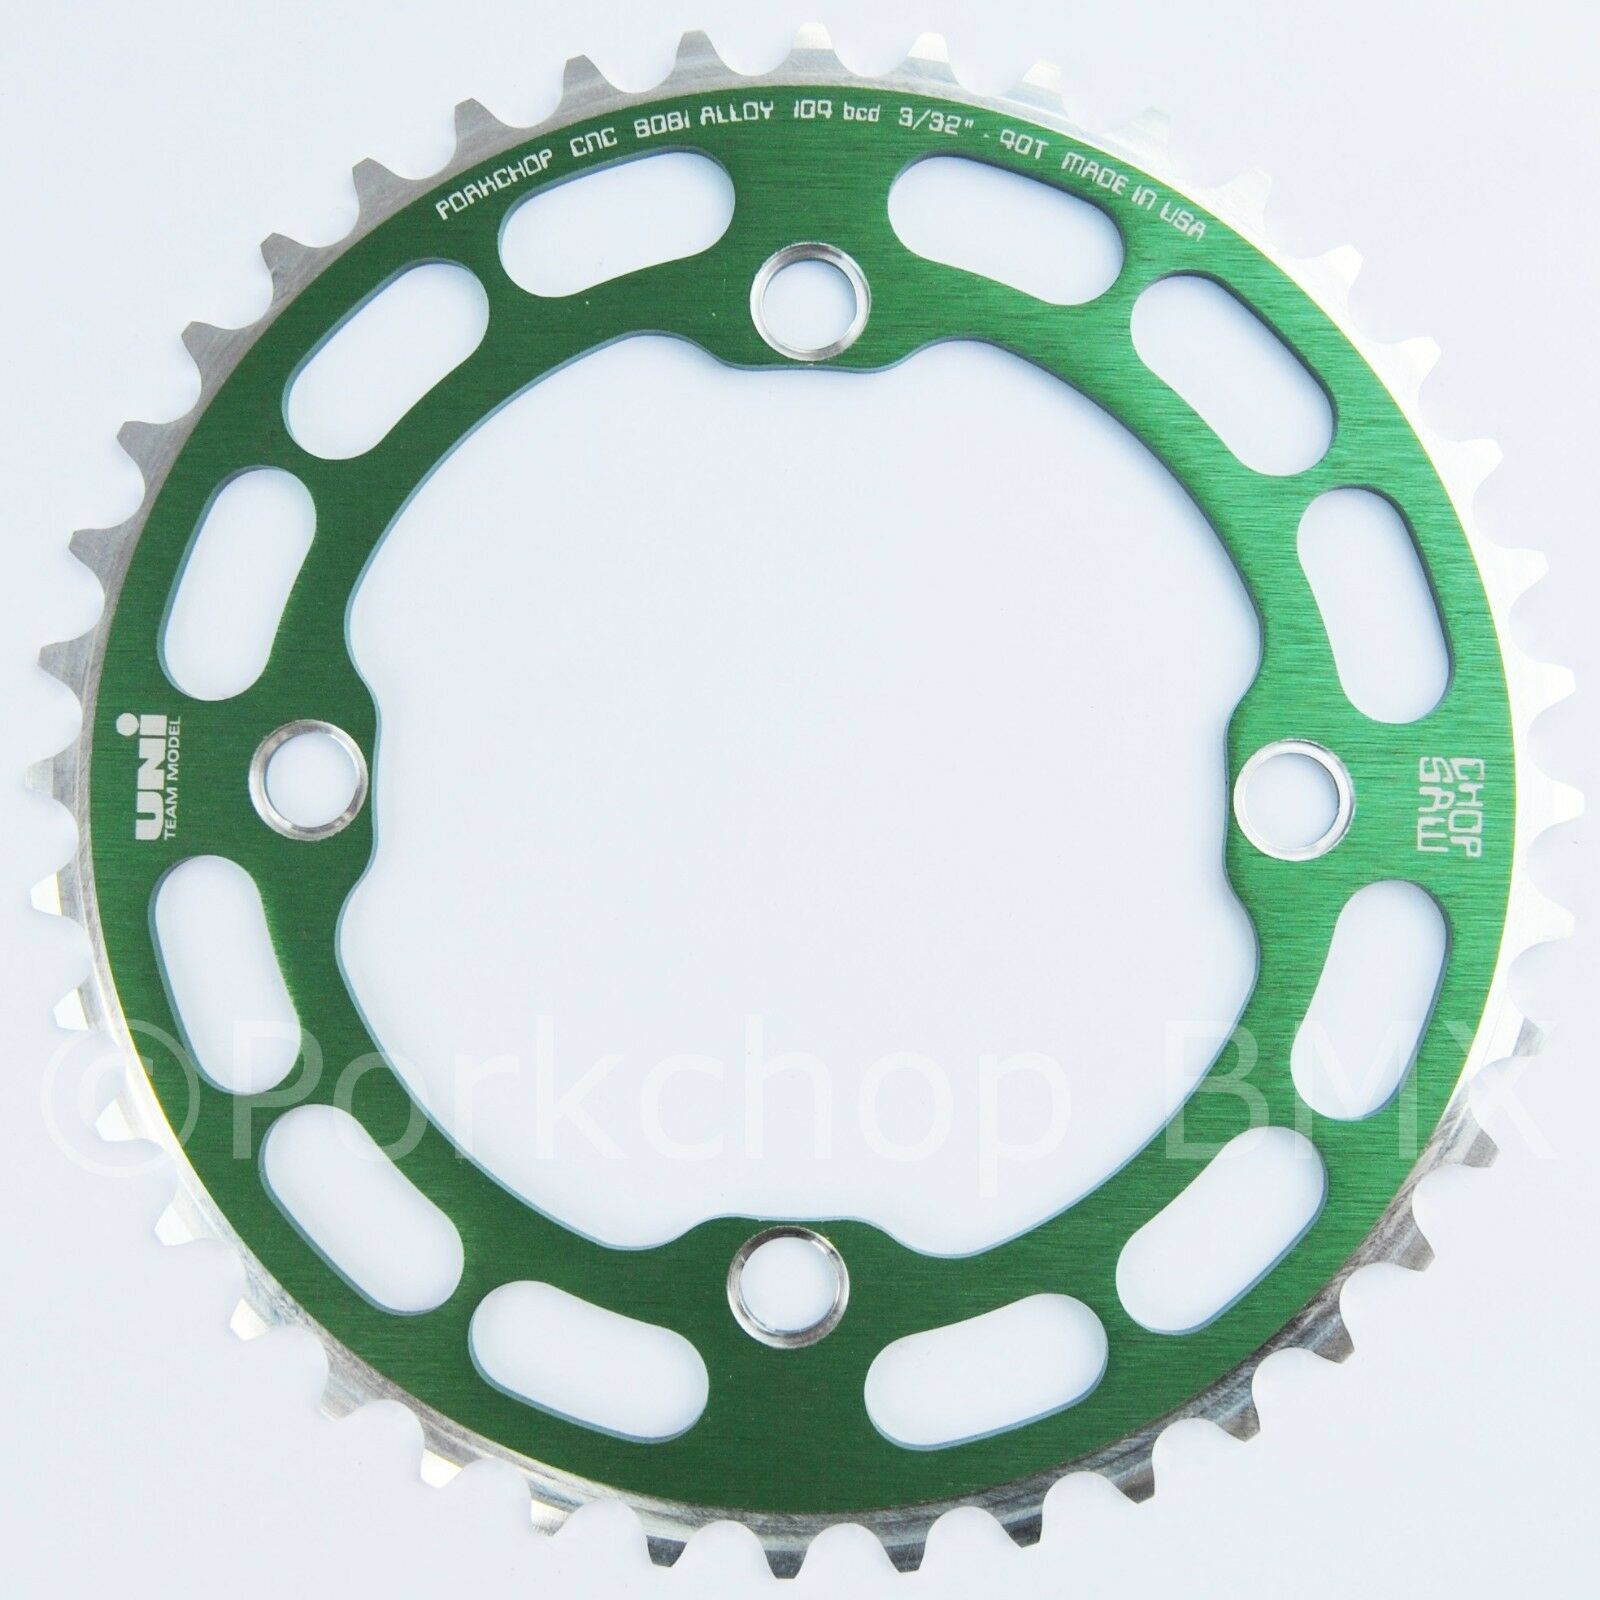 Porkchop BMX single speed bicycle Chop Saw I Chainring 40T 4 bolt 104 bcd GREEN